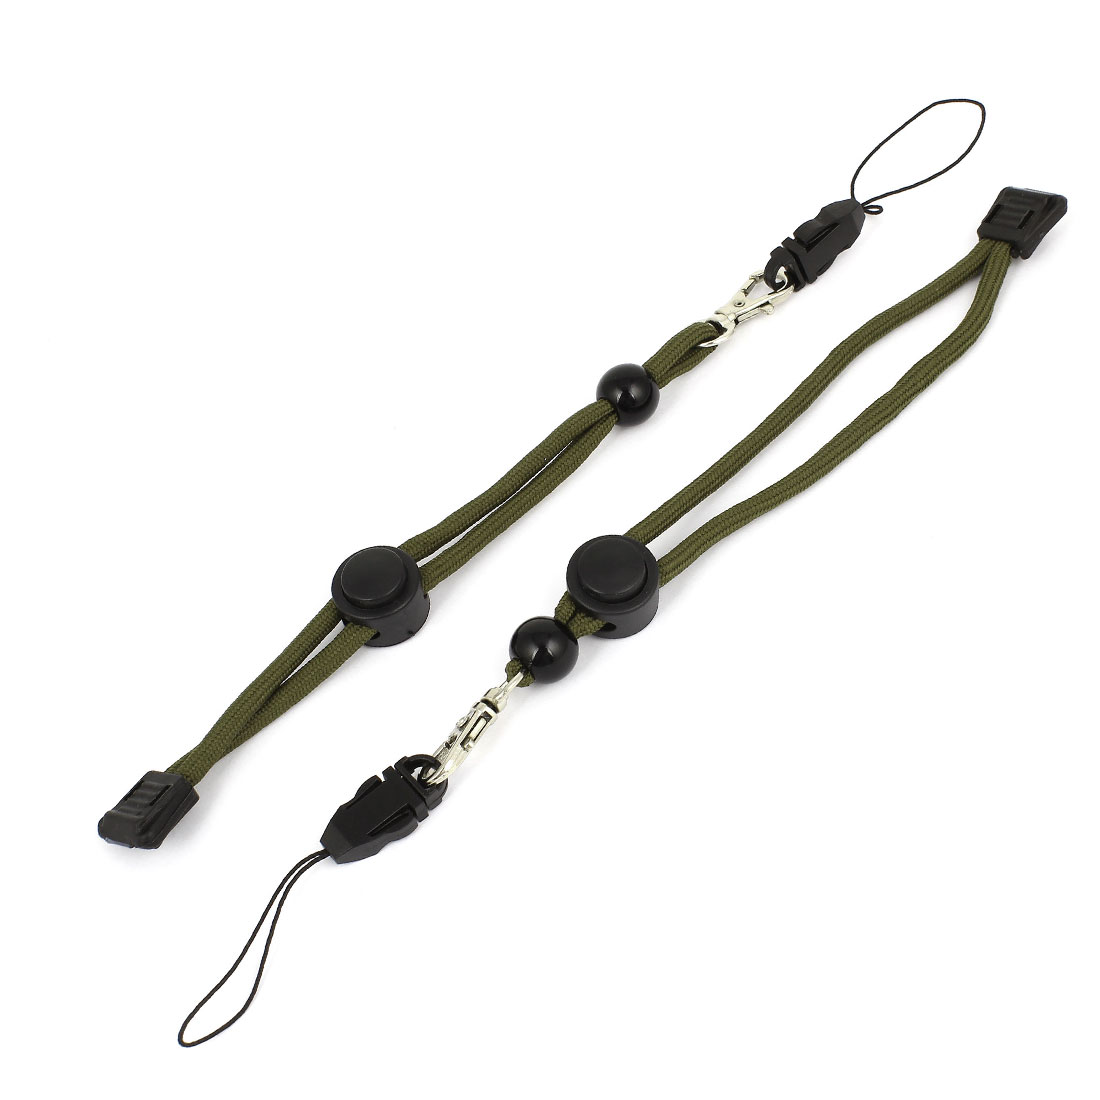 Outdoor Torch Flashlight Safety Carrying Nylon Strap Rope Lanyard 2 Pcs